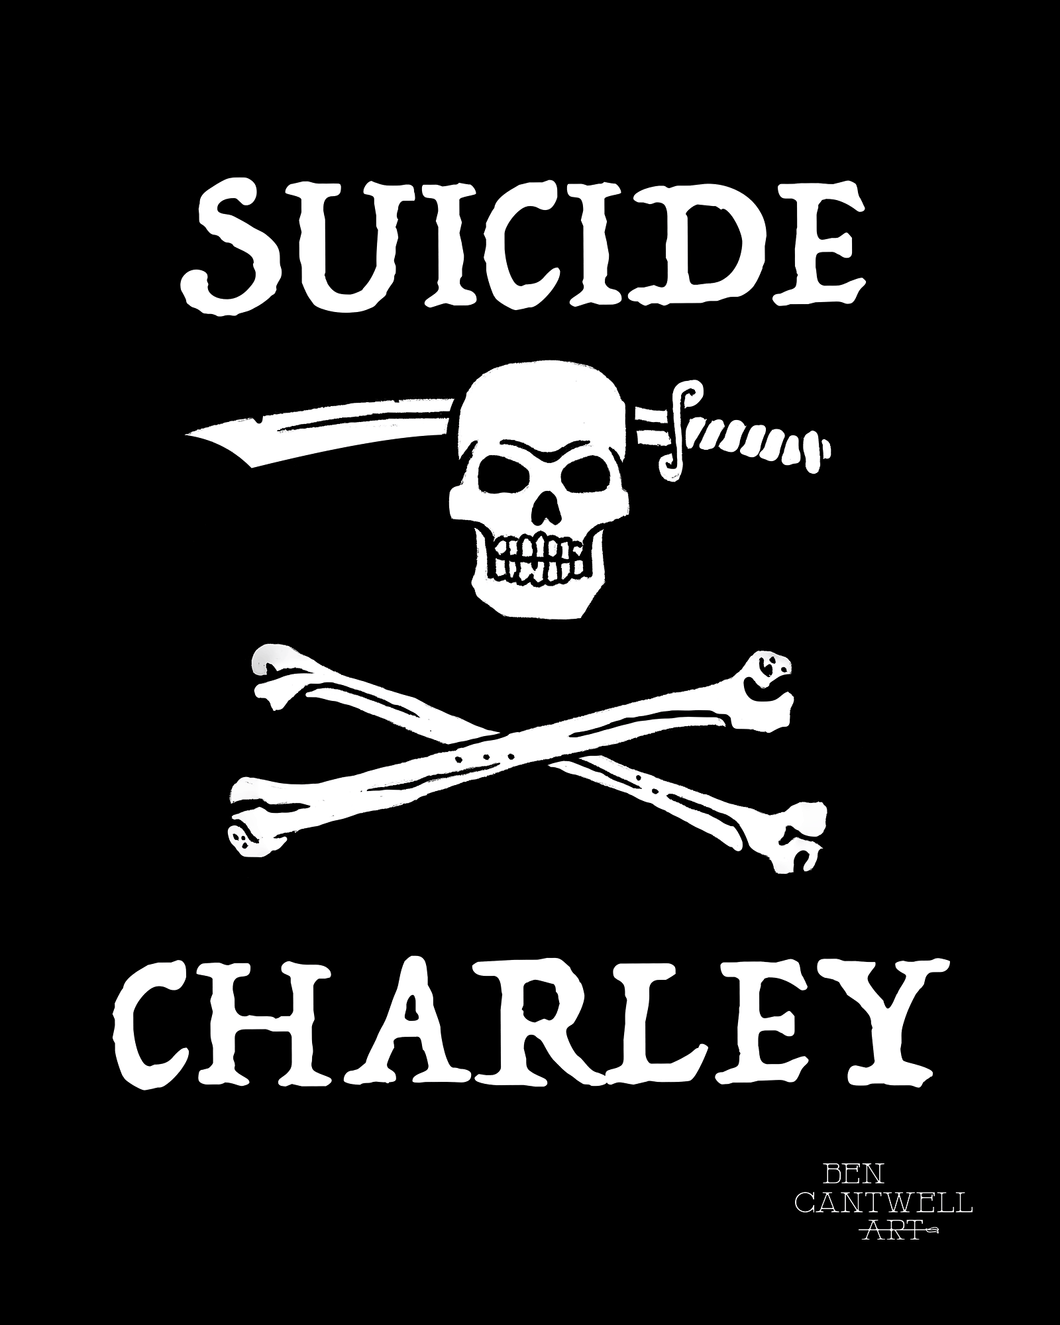 Suicide Charley